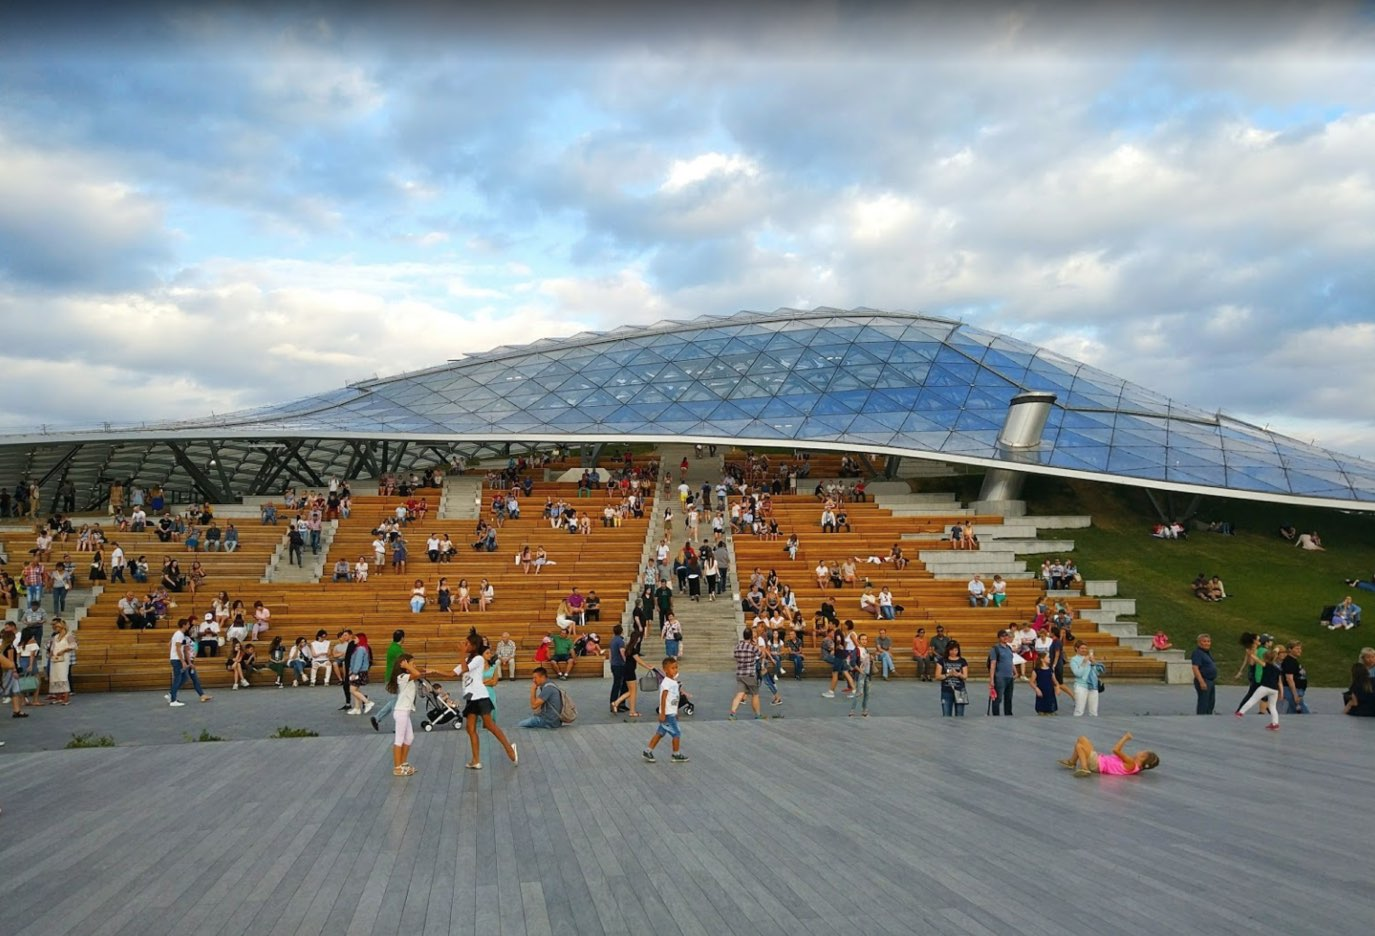 Great amphitheater - Zaryadye Park